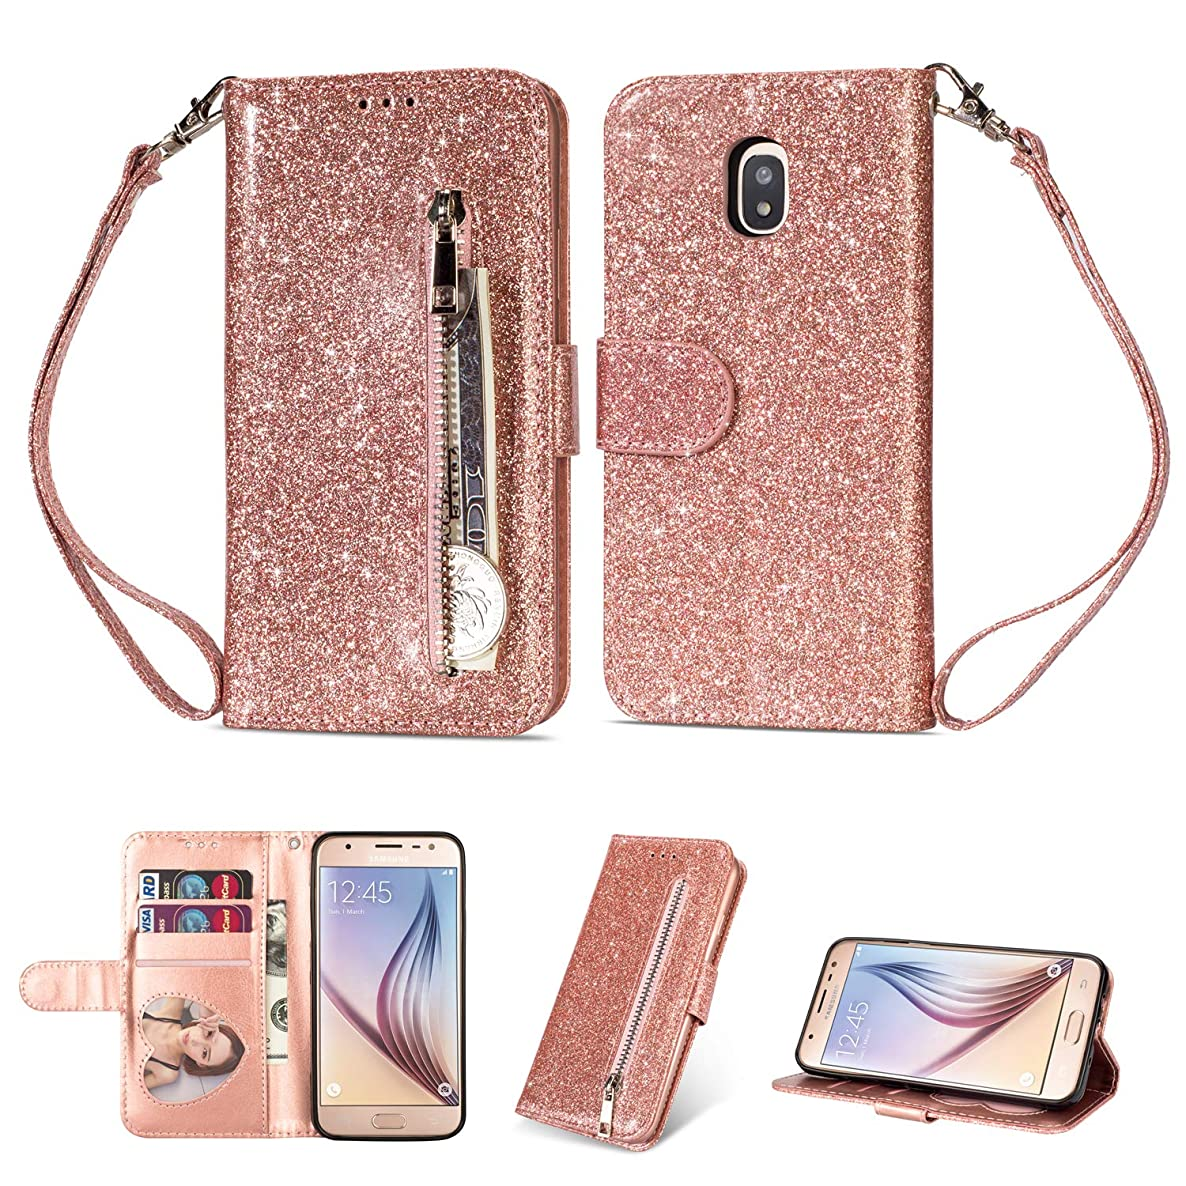 Galaxy J3 2018 Case,J3V J3 V 3rd Gen,J3 Star,J3 Achieve Wallet Case, [Glitter Sparkly Style] Leather Flip Protective Case Cover with Card Holder and Stand for Samsung Galaxy J3 2018 J337 (Rose Gold)